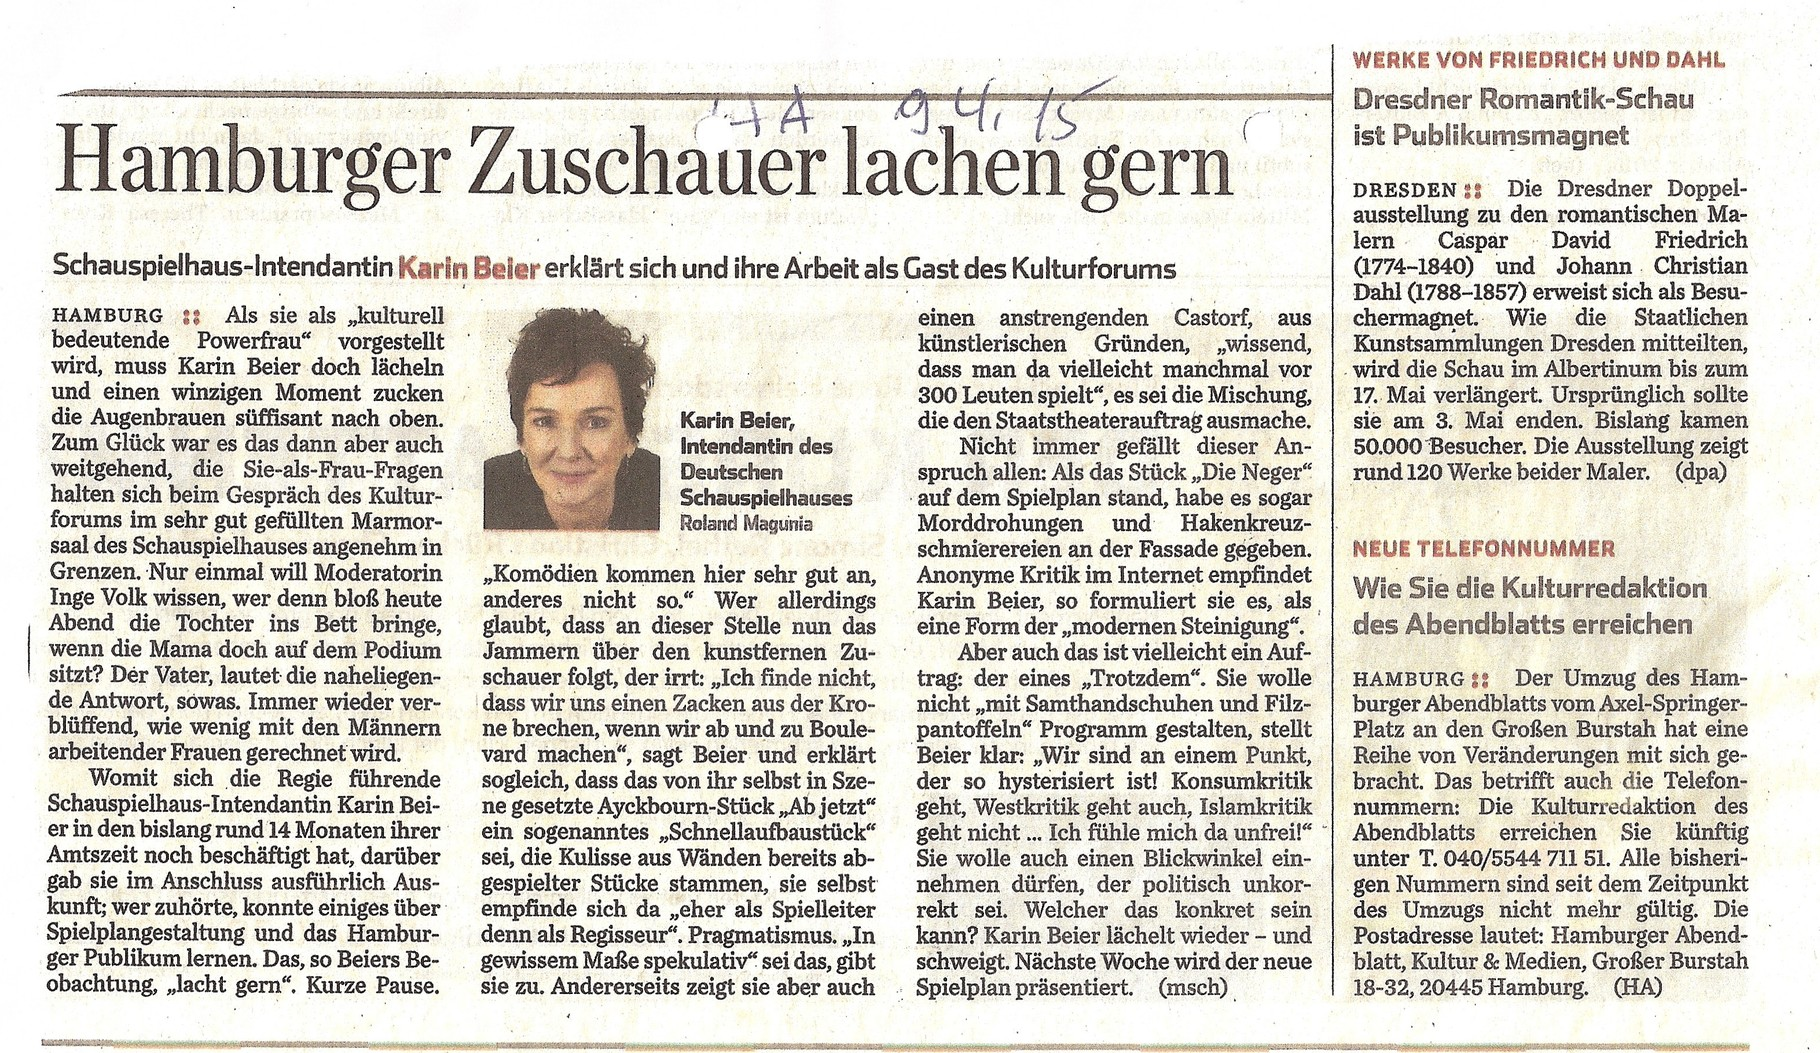 Hamburger Abendblatt, 9. April 2015